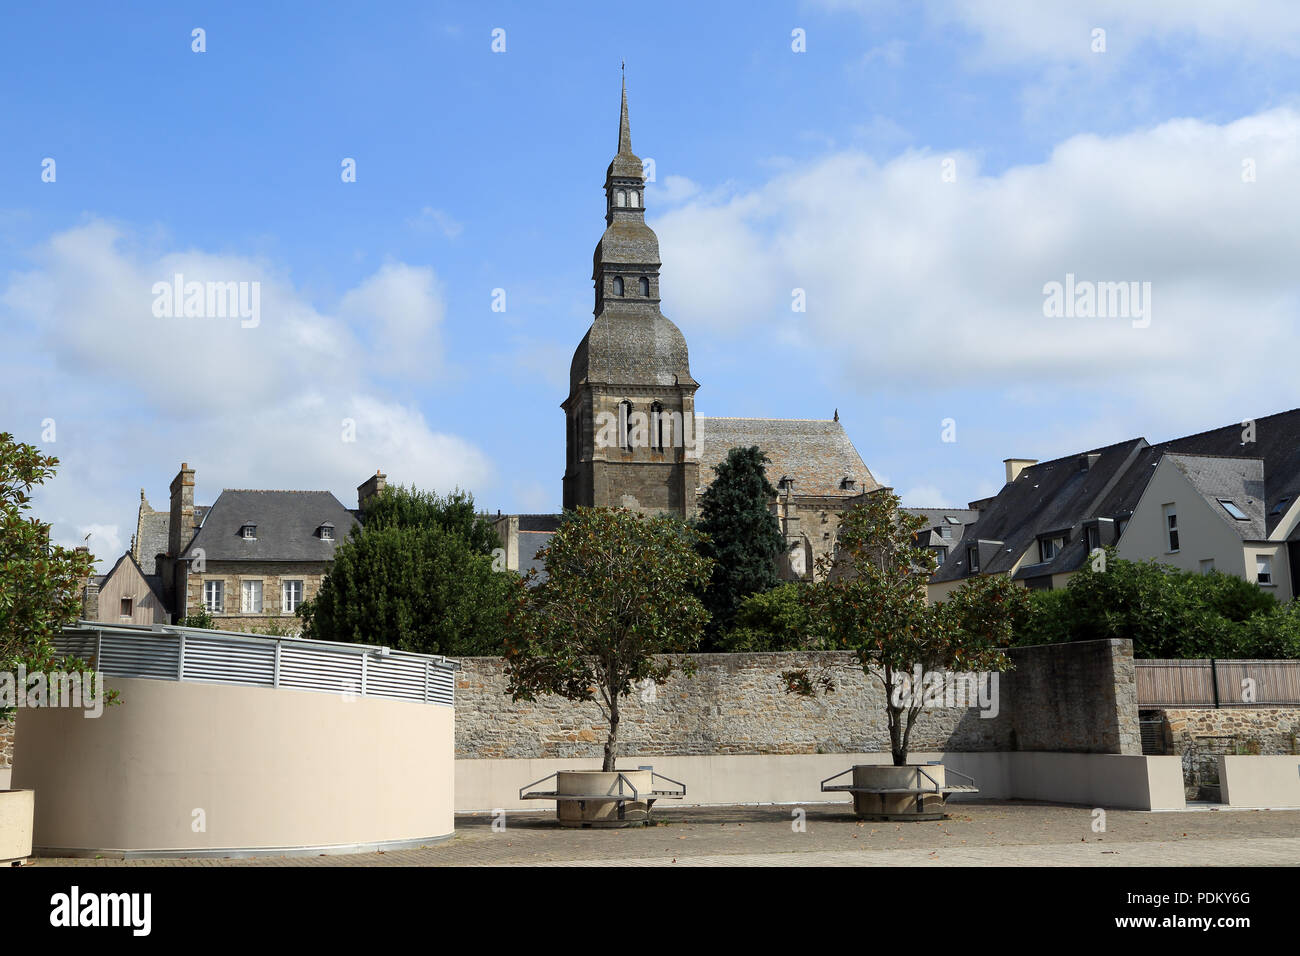 View of Basilic Saint Saveur from Rue Victor Basch, Dinan, Cotes d'Armor, Brittany, France - Stock Image